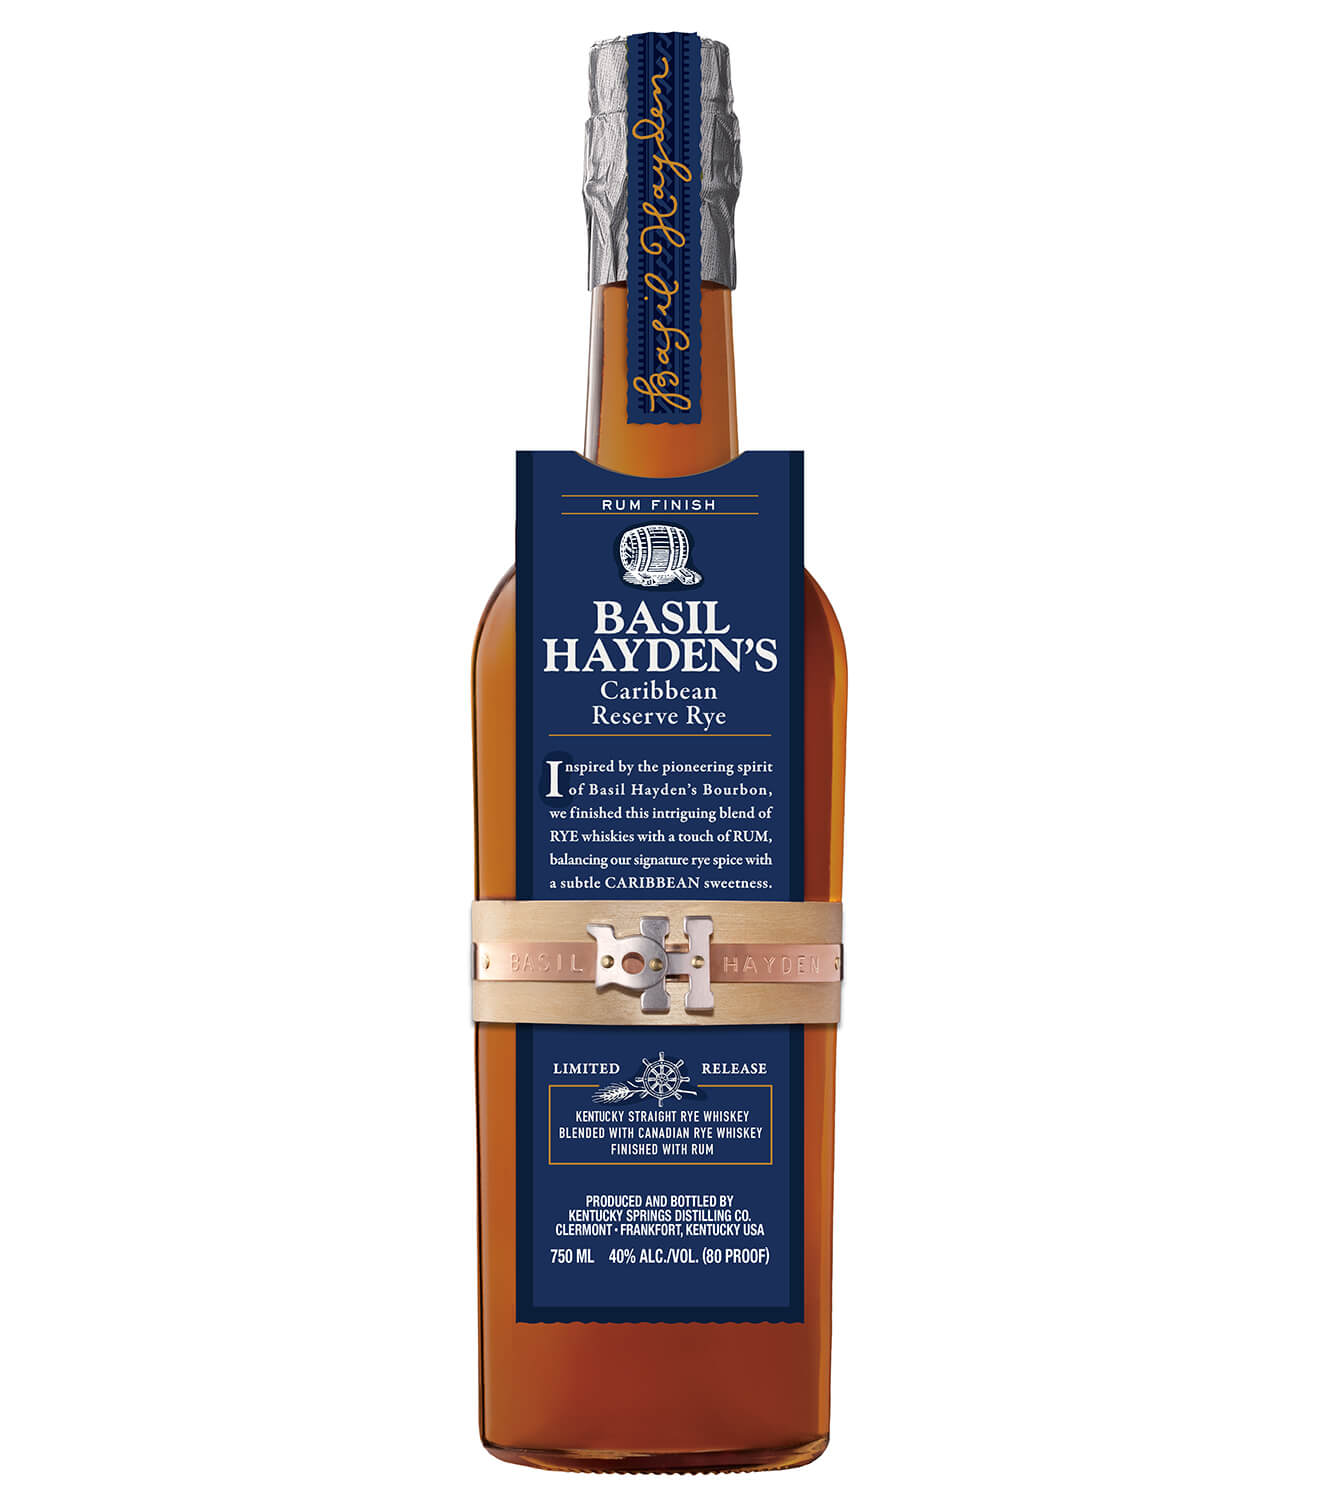 Basil Hayden's Caribbean Reserve Rye, bottle on white